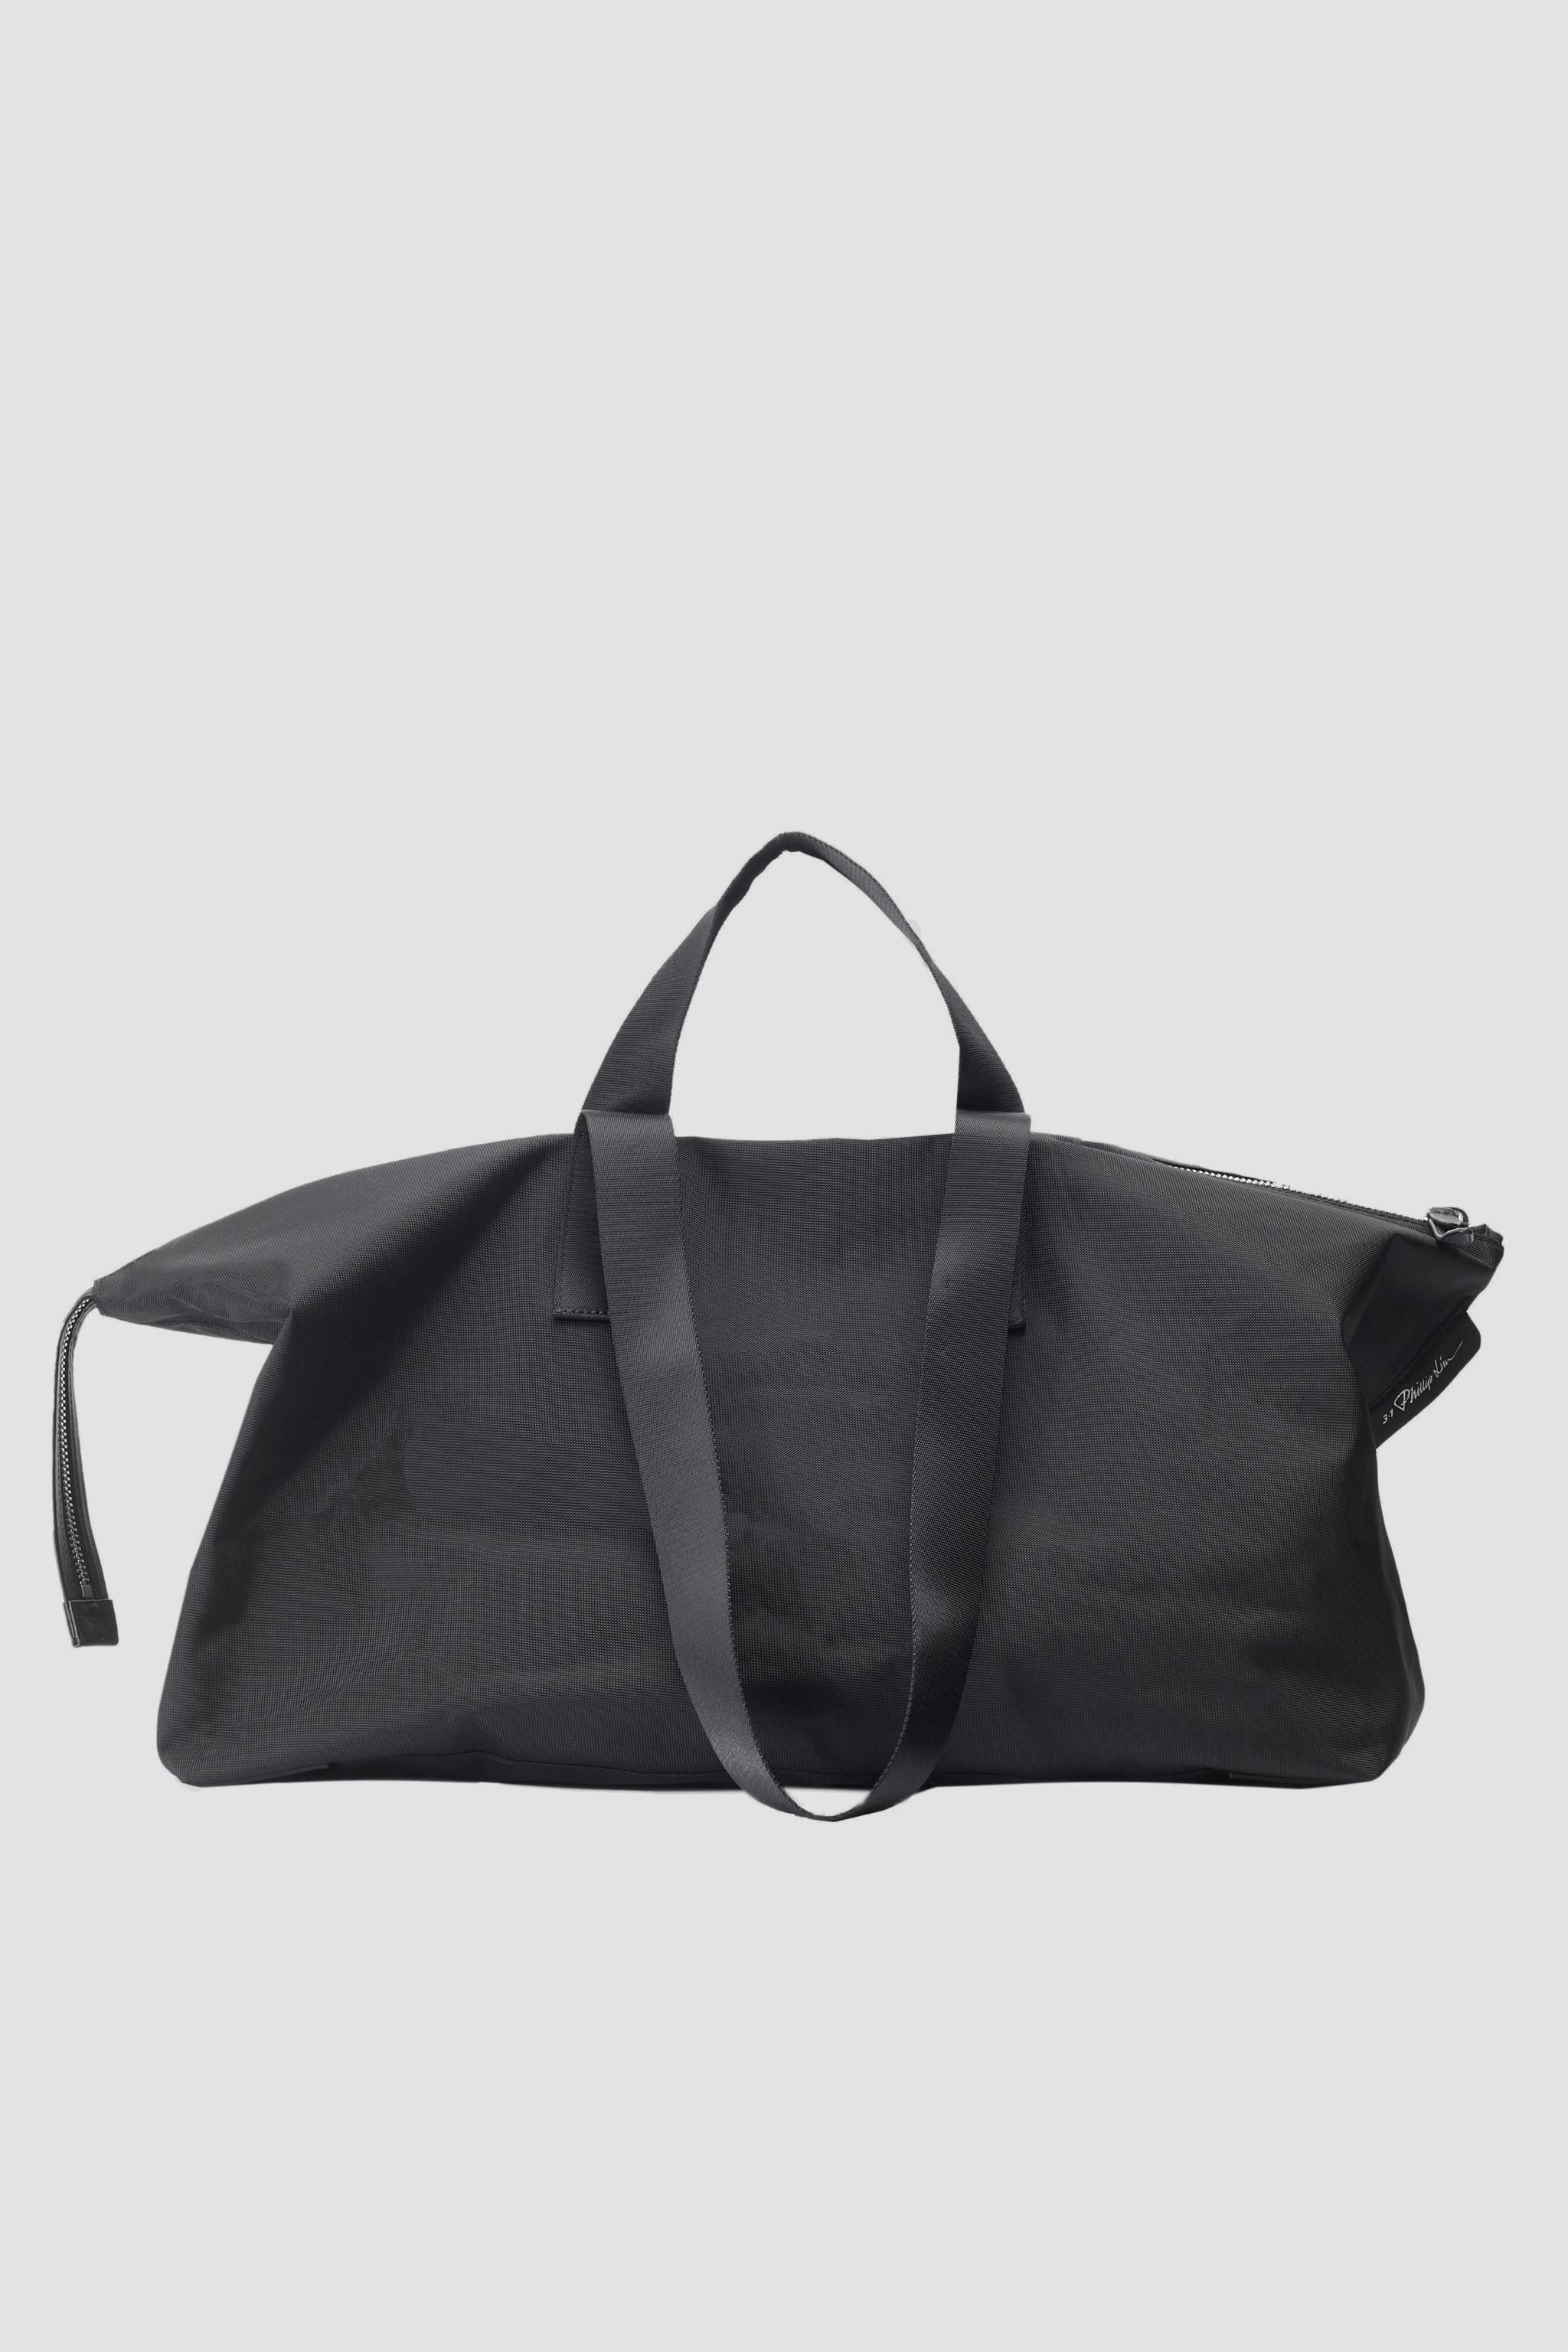 The Deconstructed Duffle Bag 4